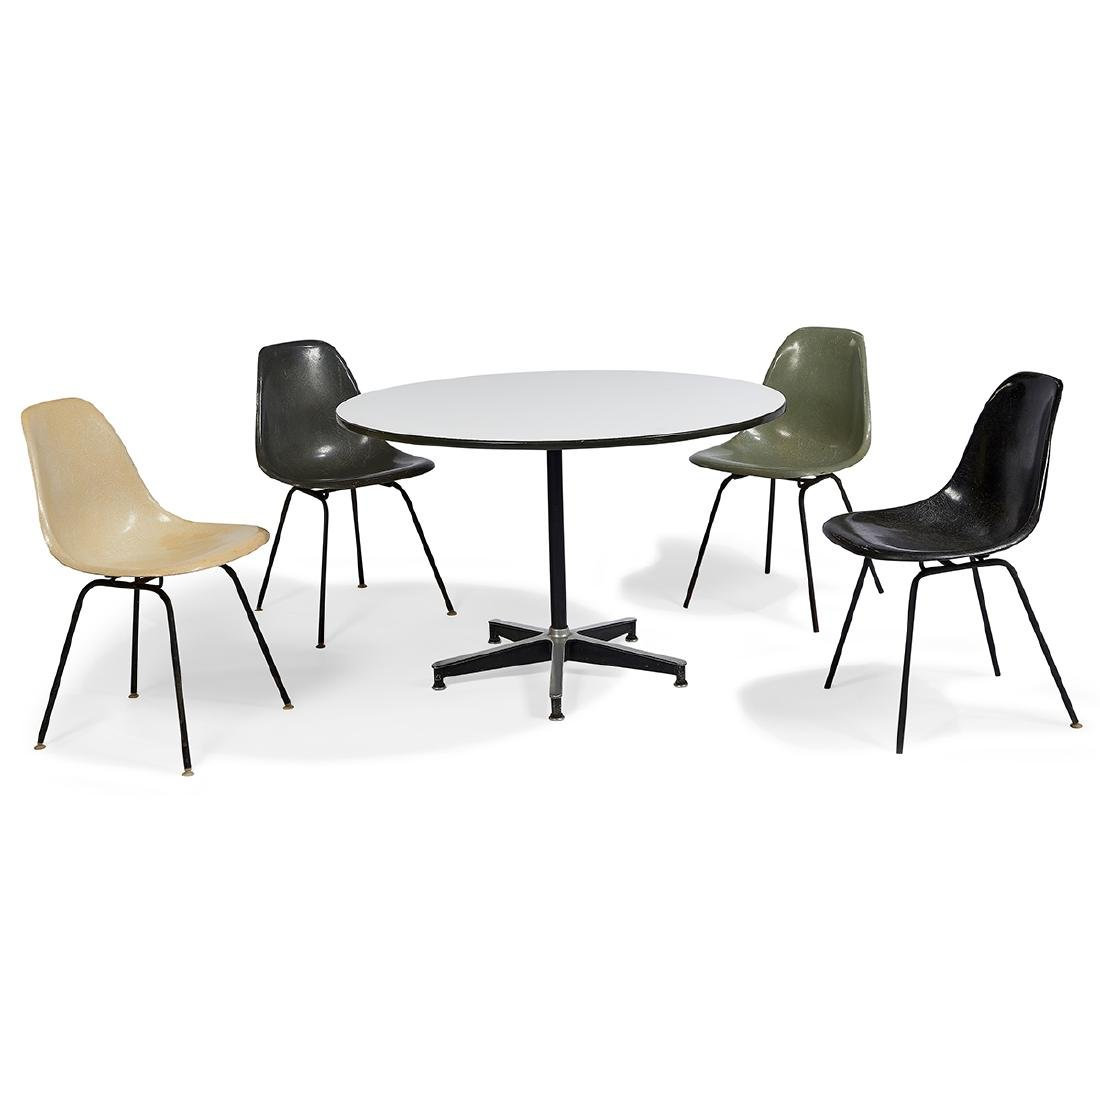 Eames for Herman Miller chairs, four, with table